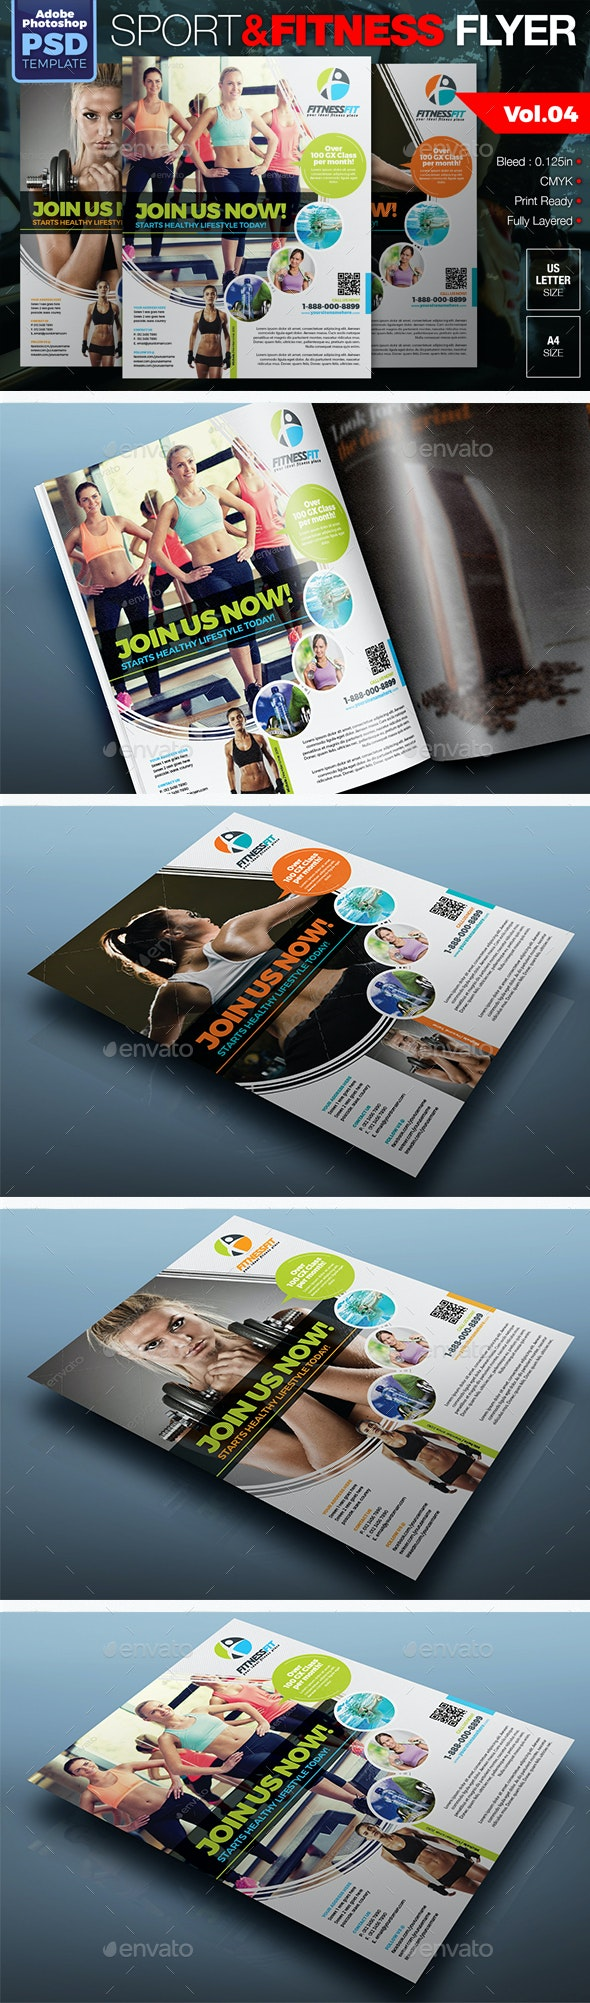 Sport & Fitness Flyer Vol.04 - Sports Events